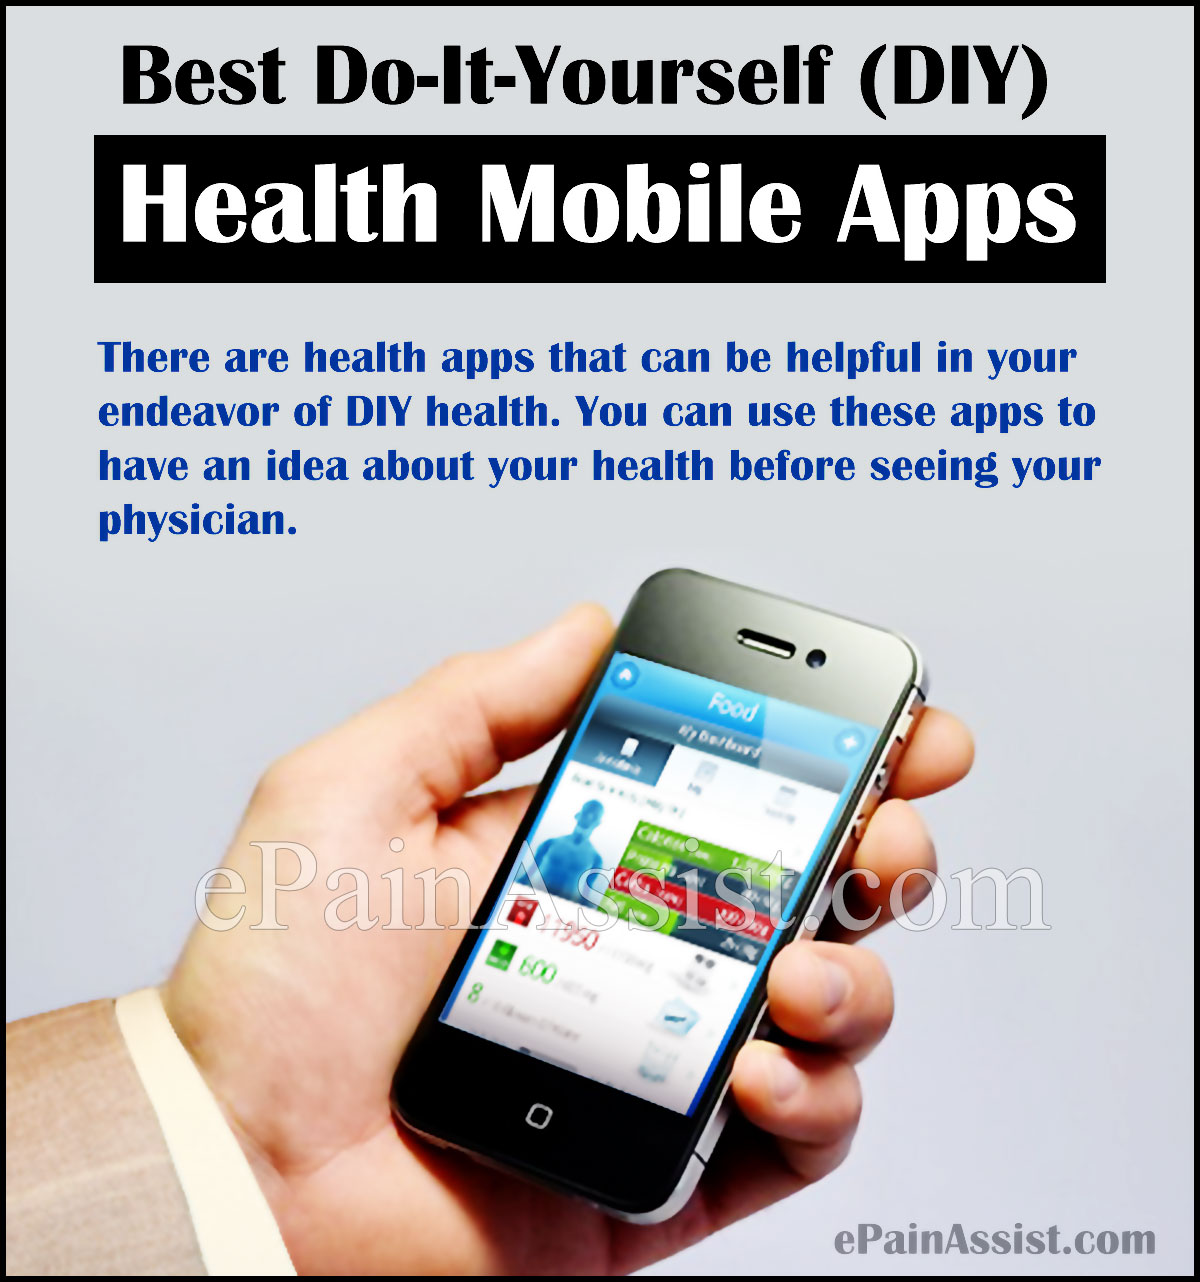 Best Do-It-Yourself (DIY) Health Mobile Apps